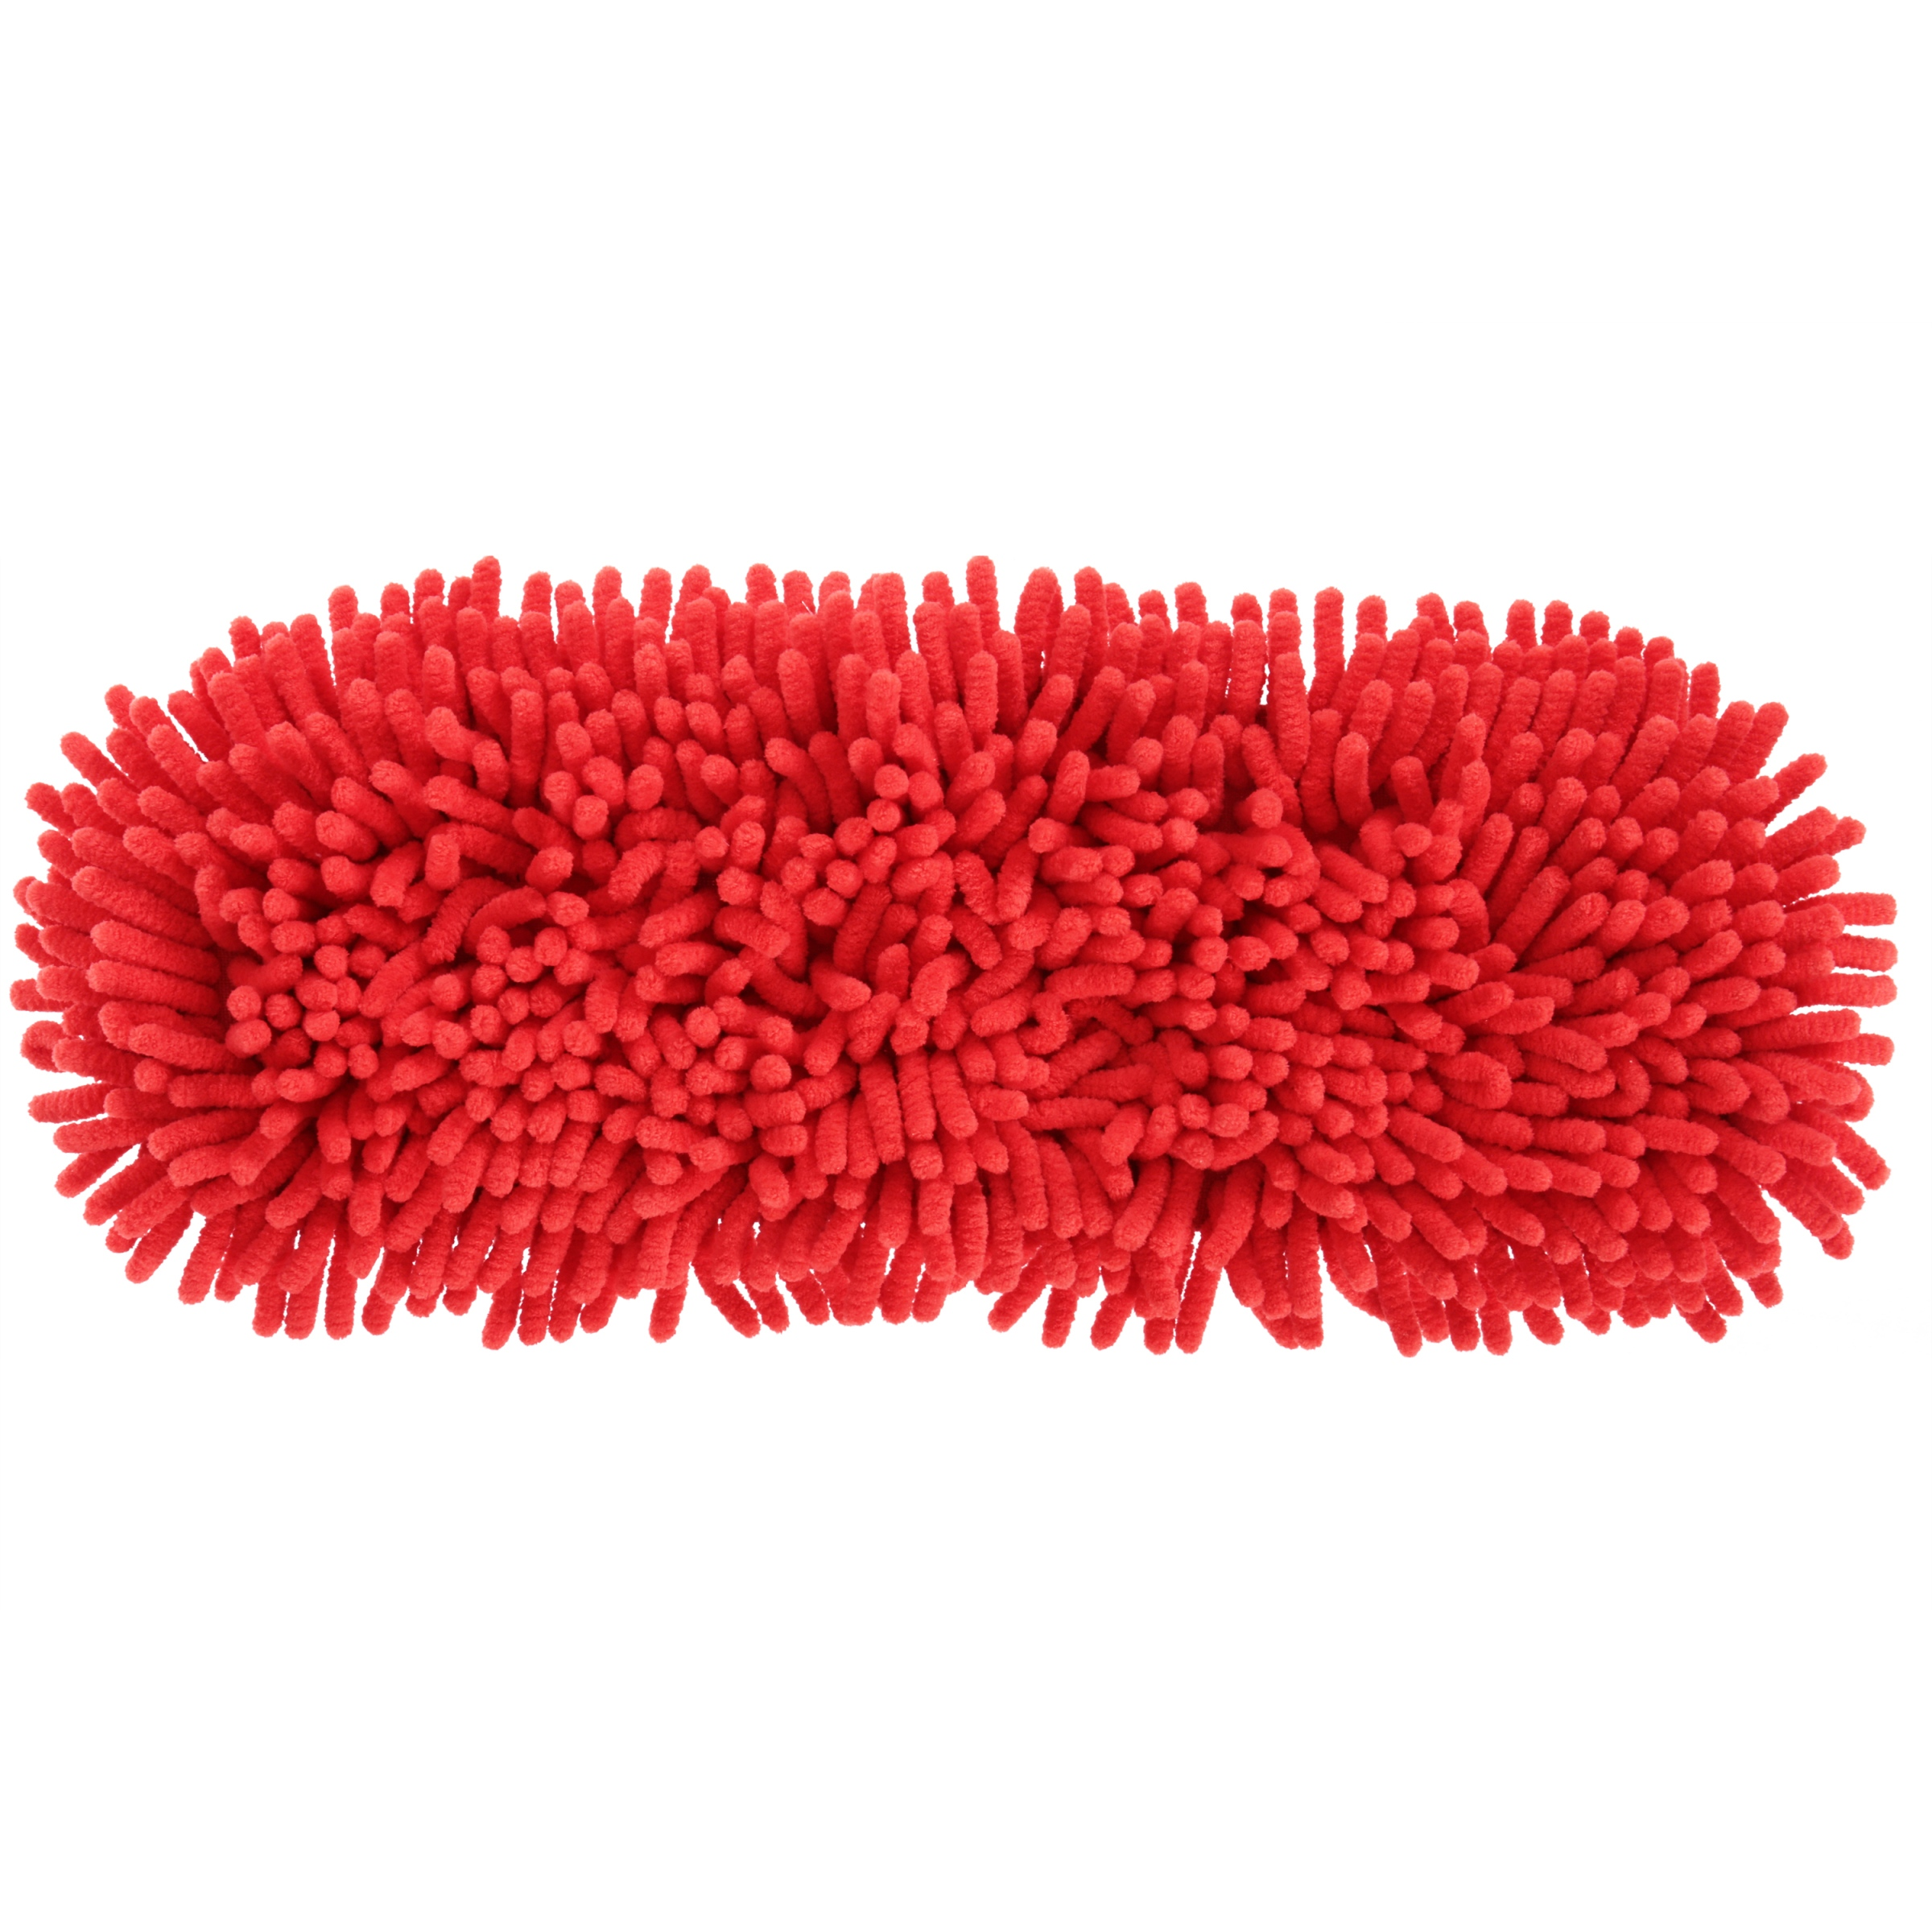 Dirt Devil® Dry Cleaning Swipes™ Washable Microfiber Dusting Pad